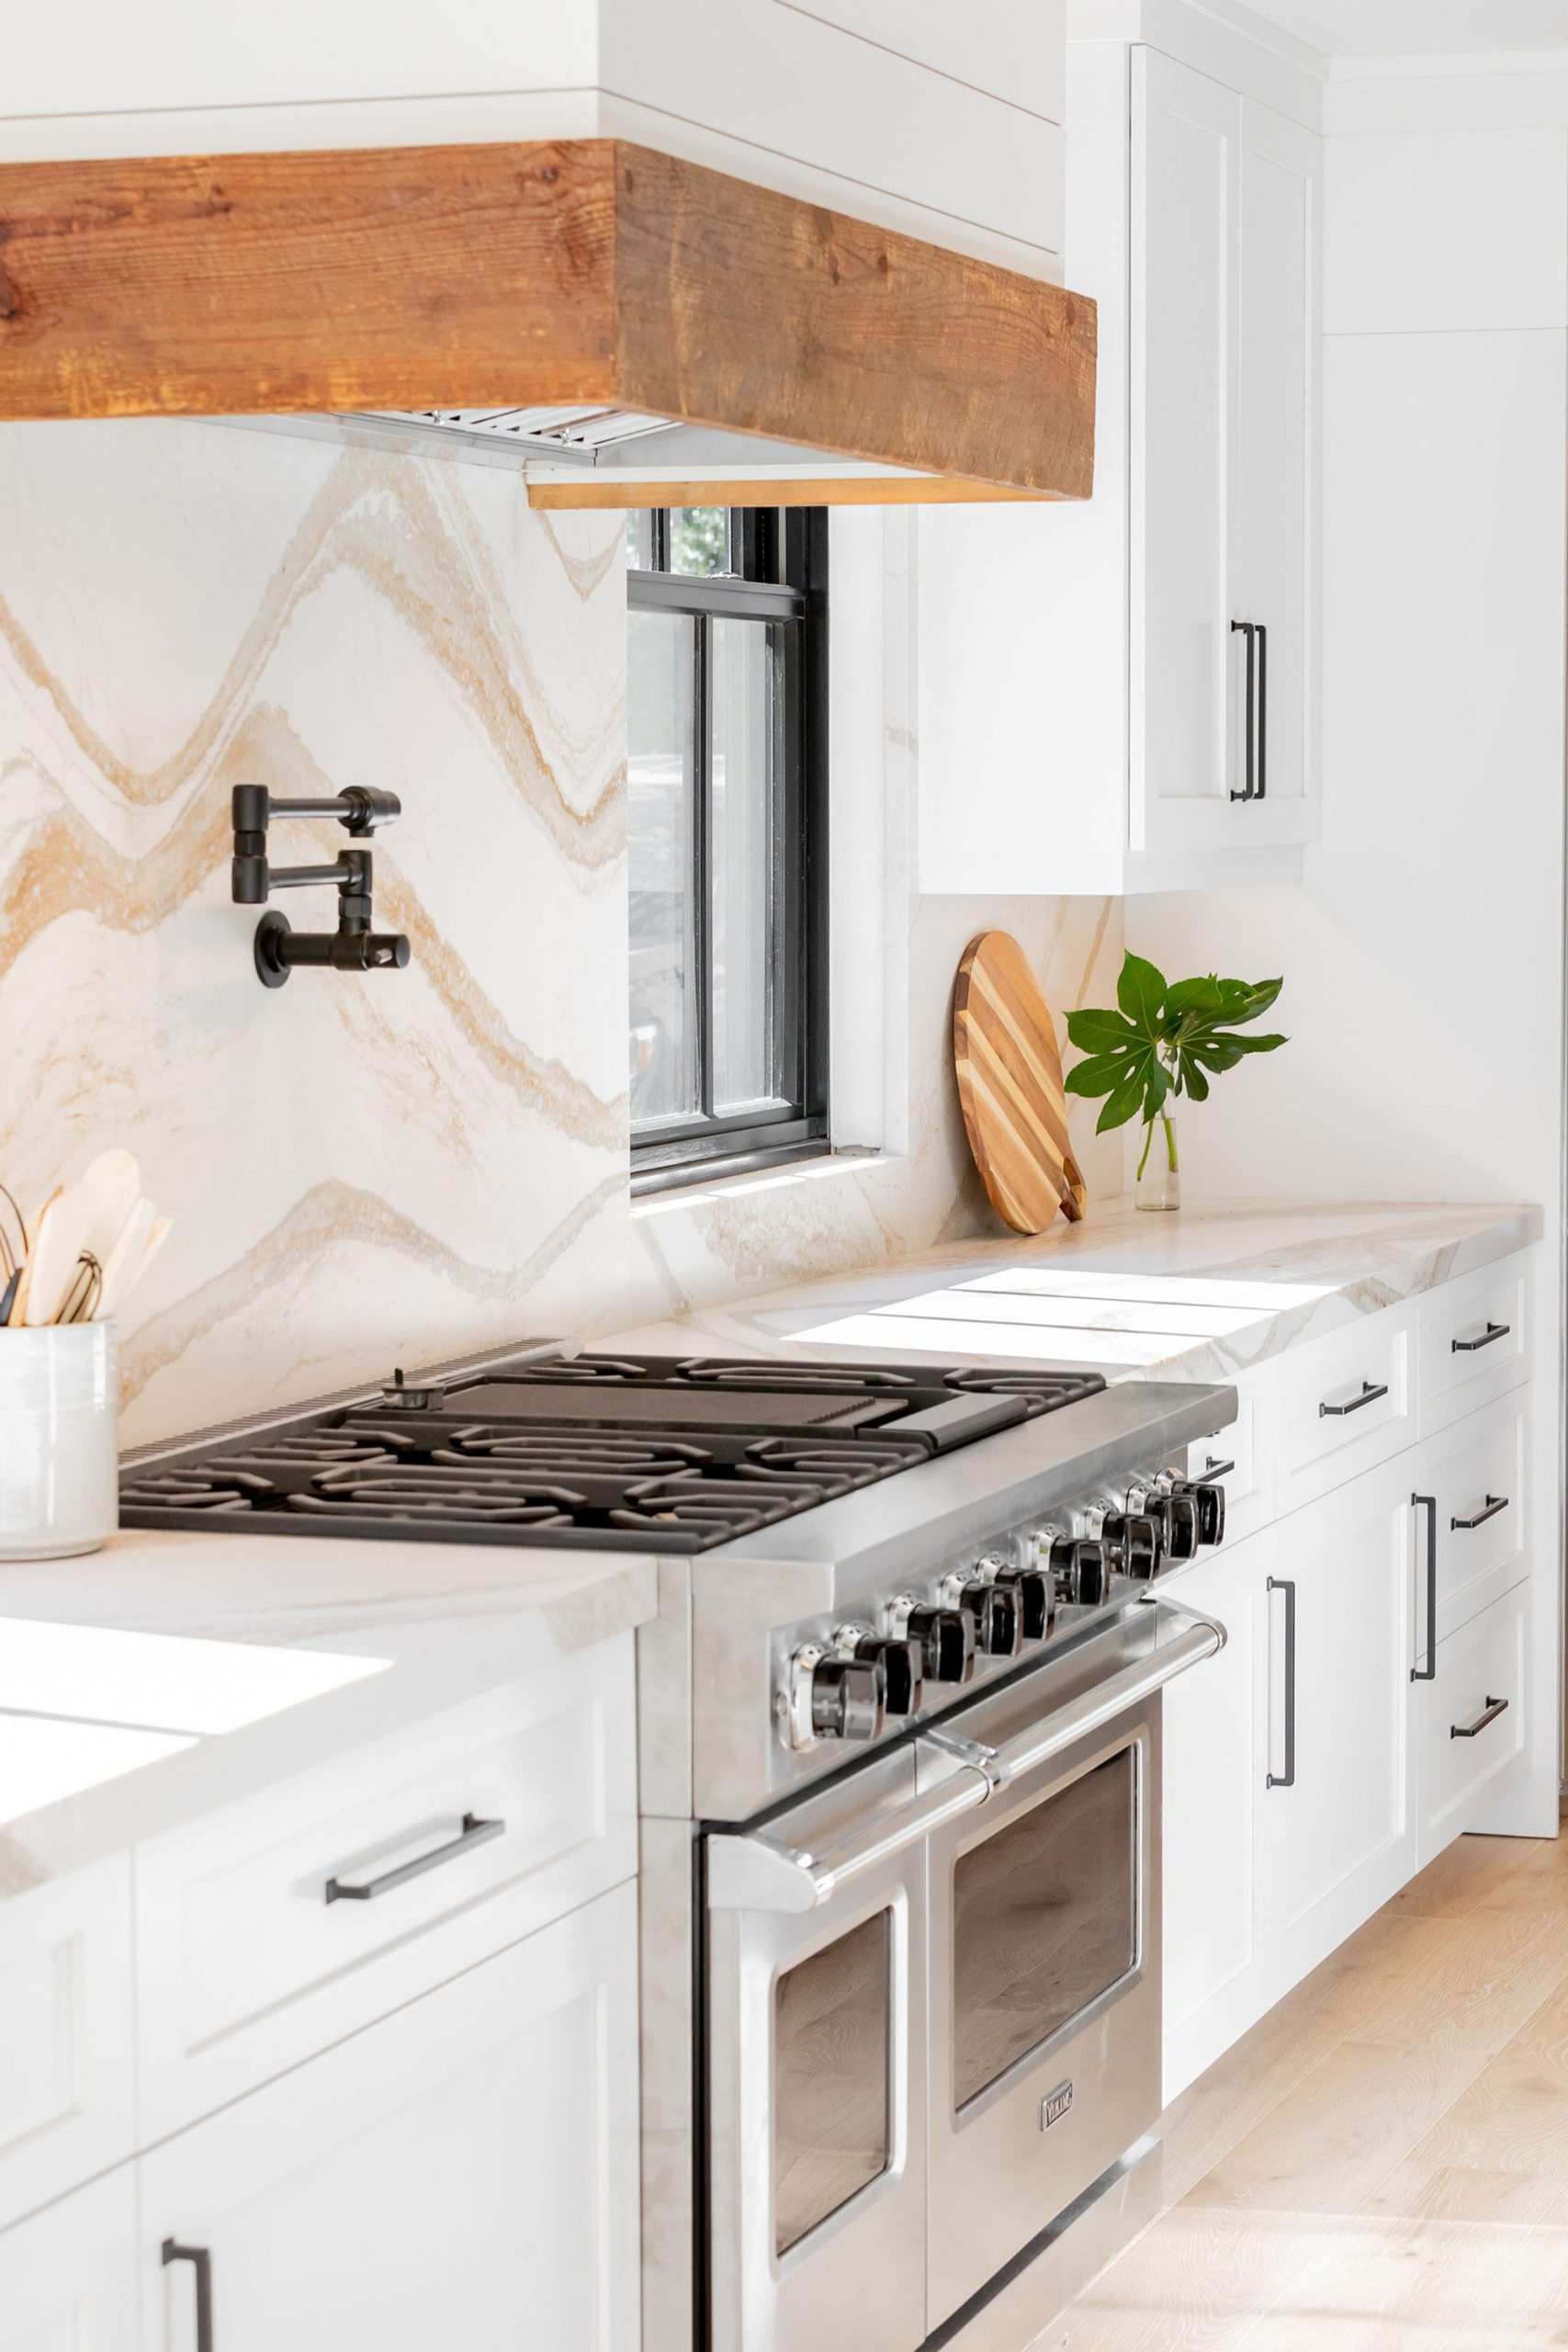 Closeup view of a beautiful luxury kitchen featuring solid marble slab counters and backsplash, Viking range and custom wood trimmed hood.